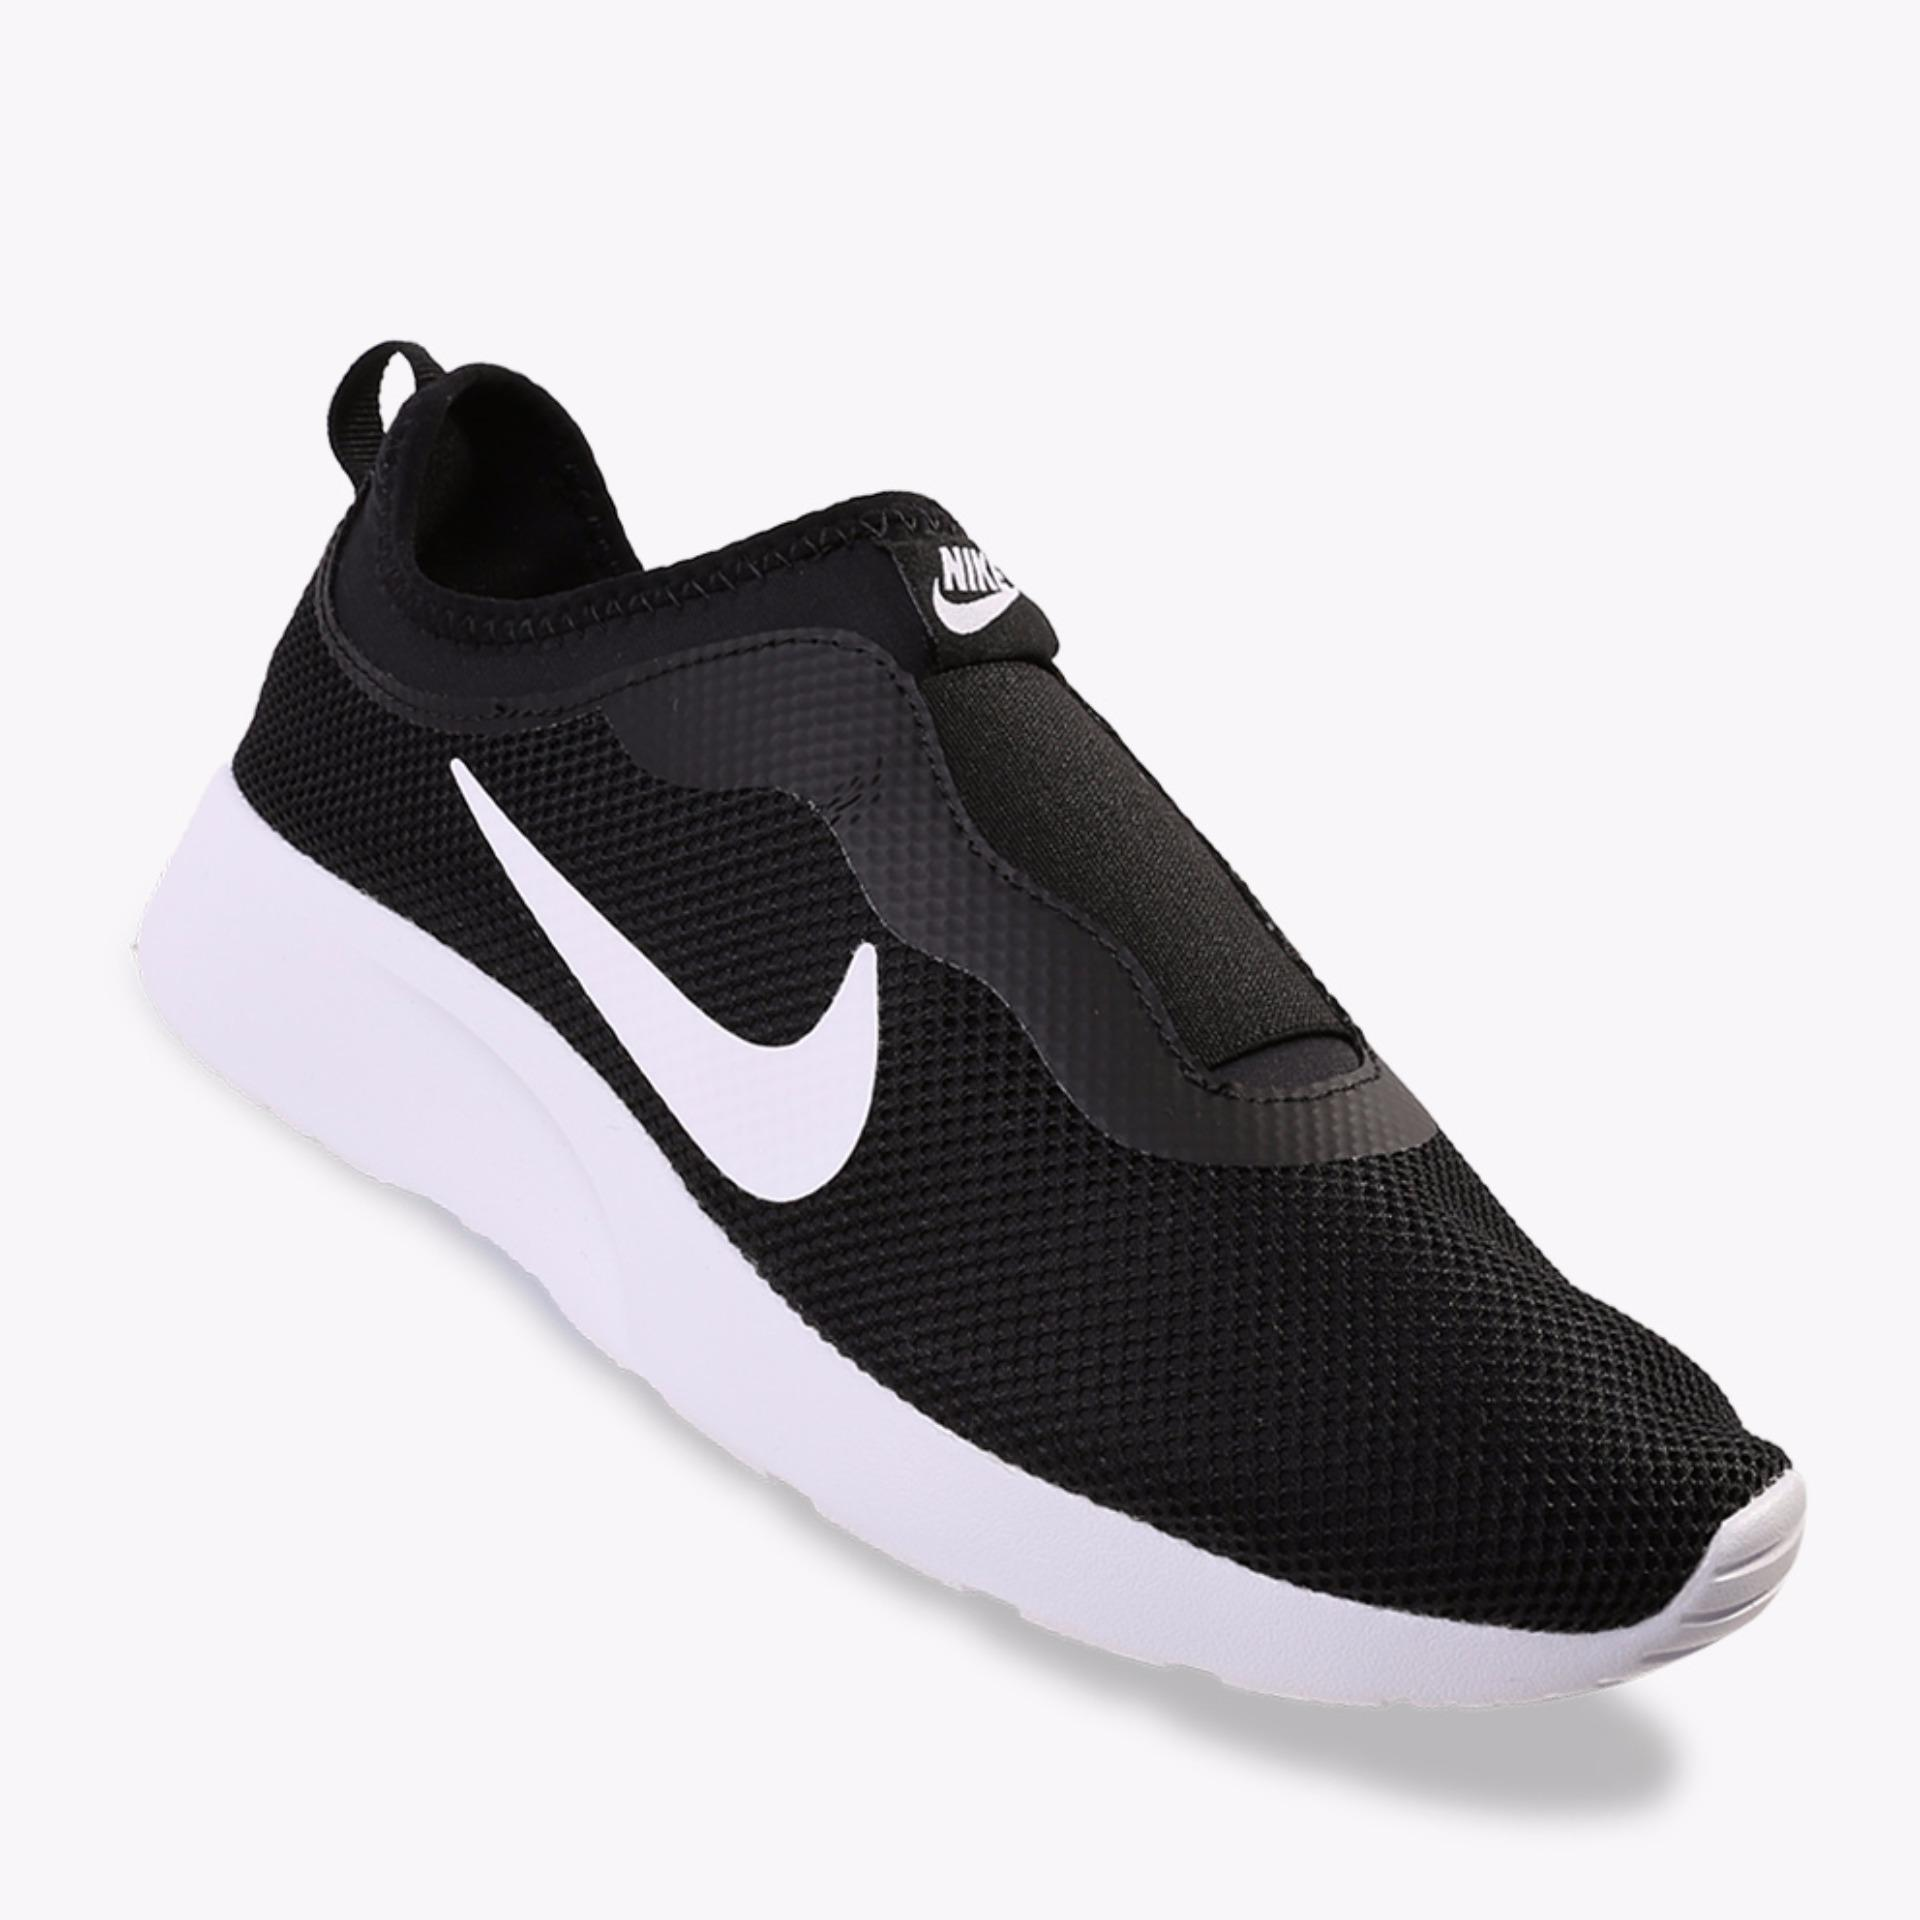 Spesifikasi Nike Tanjun Slip On Women S Sneakers Shoes Hitam Murah Berkualitas